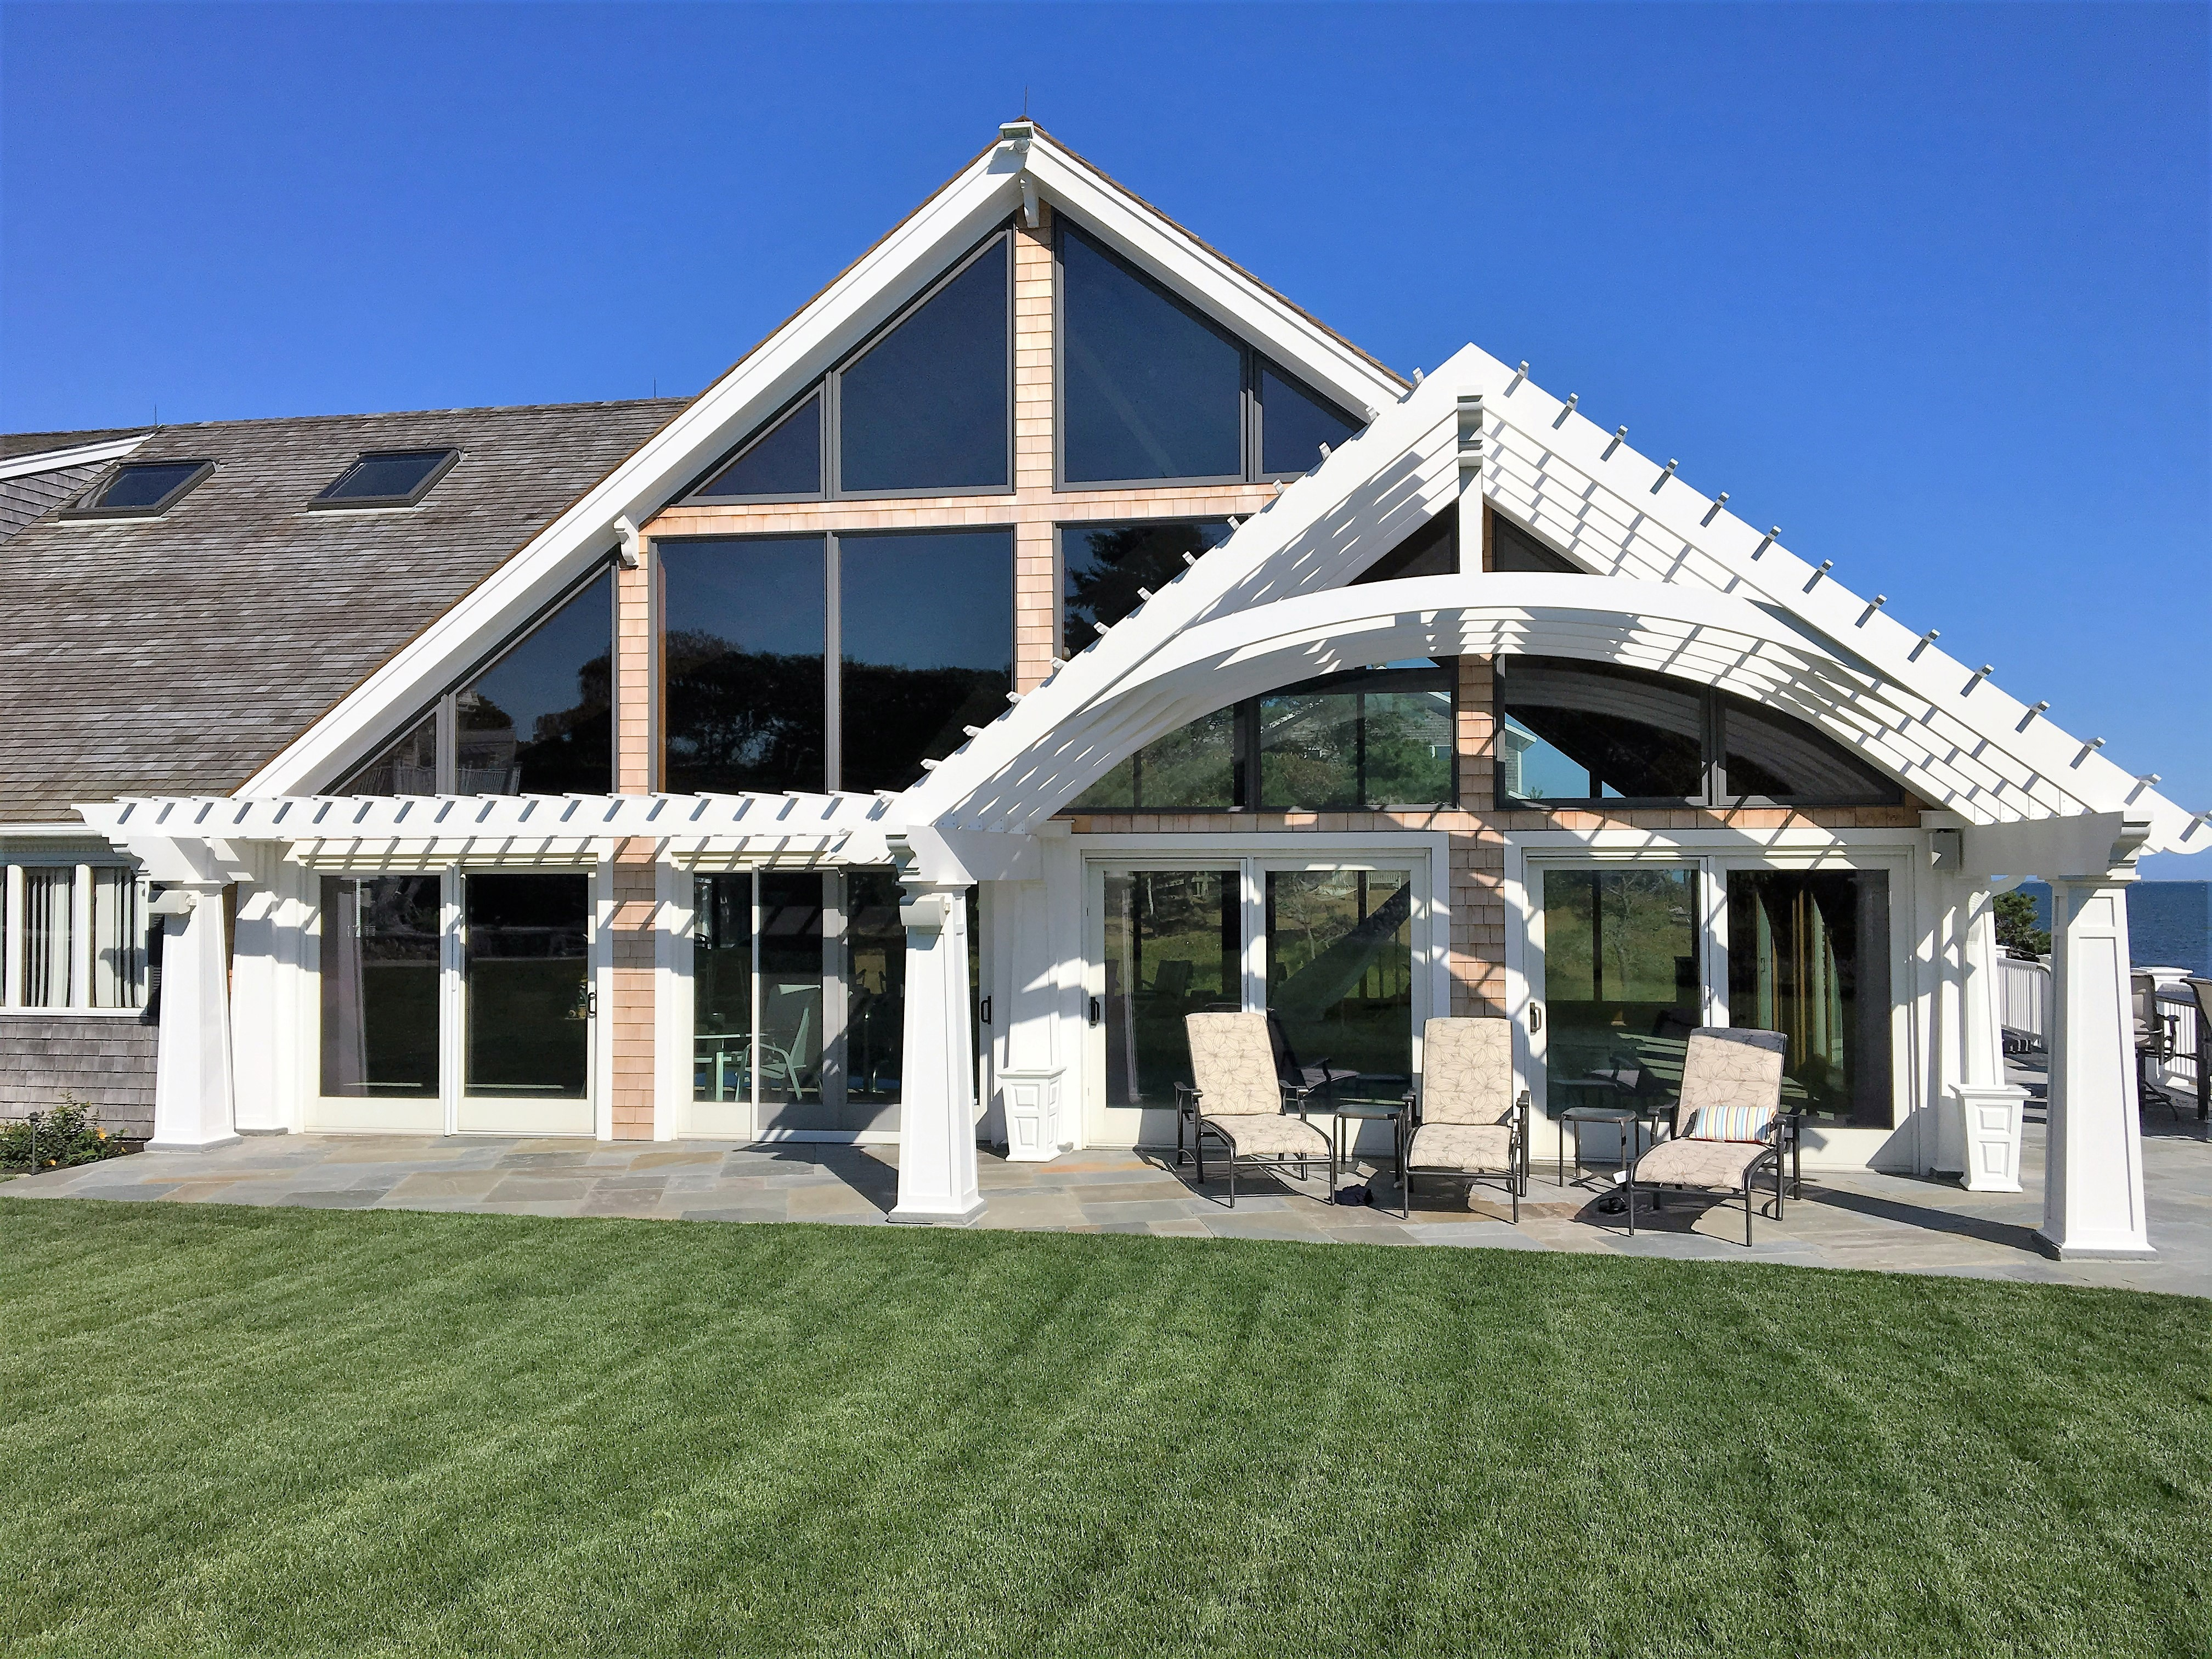 Osterville remodeling and renovations contractors Cotuit MA